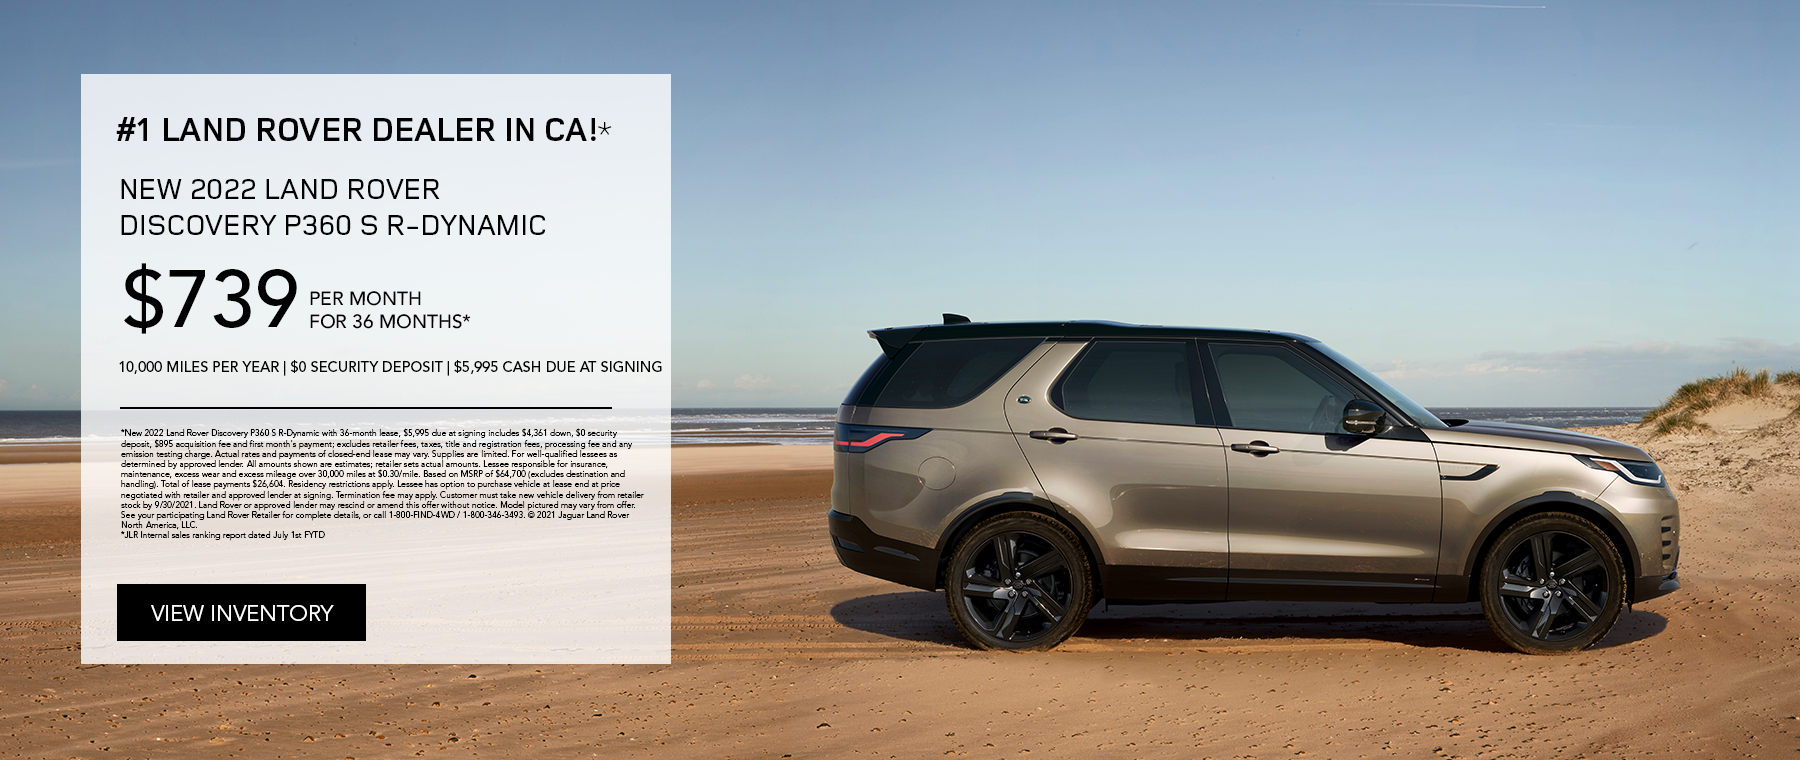 NEW 2022 LAND ROVER DISCOVERY P360 S R-DYNAMIC. $739 PER MONTH. 36 MONTH LEASE TERM. $5,995 CASH DUE AT SIGNING. $0 SECURITY DEPOSIT. 10,000 MILES PER YEAR. EXCLUDES RETAILER FEES, TAXES, TITLE AND REGISTRATION FEES, PROCESSING FEE AND ANY EMISSION TESTING CHARGE. OFFER ENDS 9/30/2021.